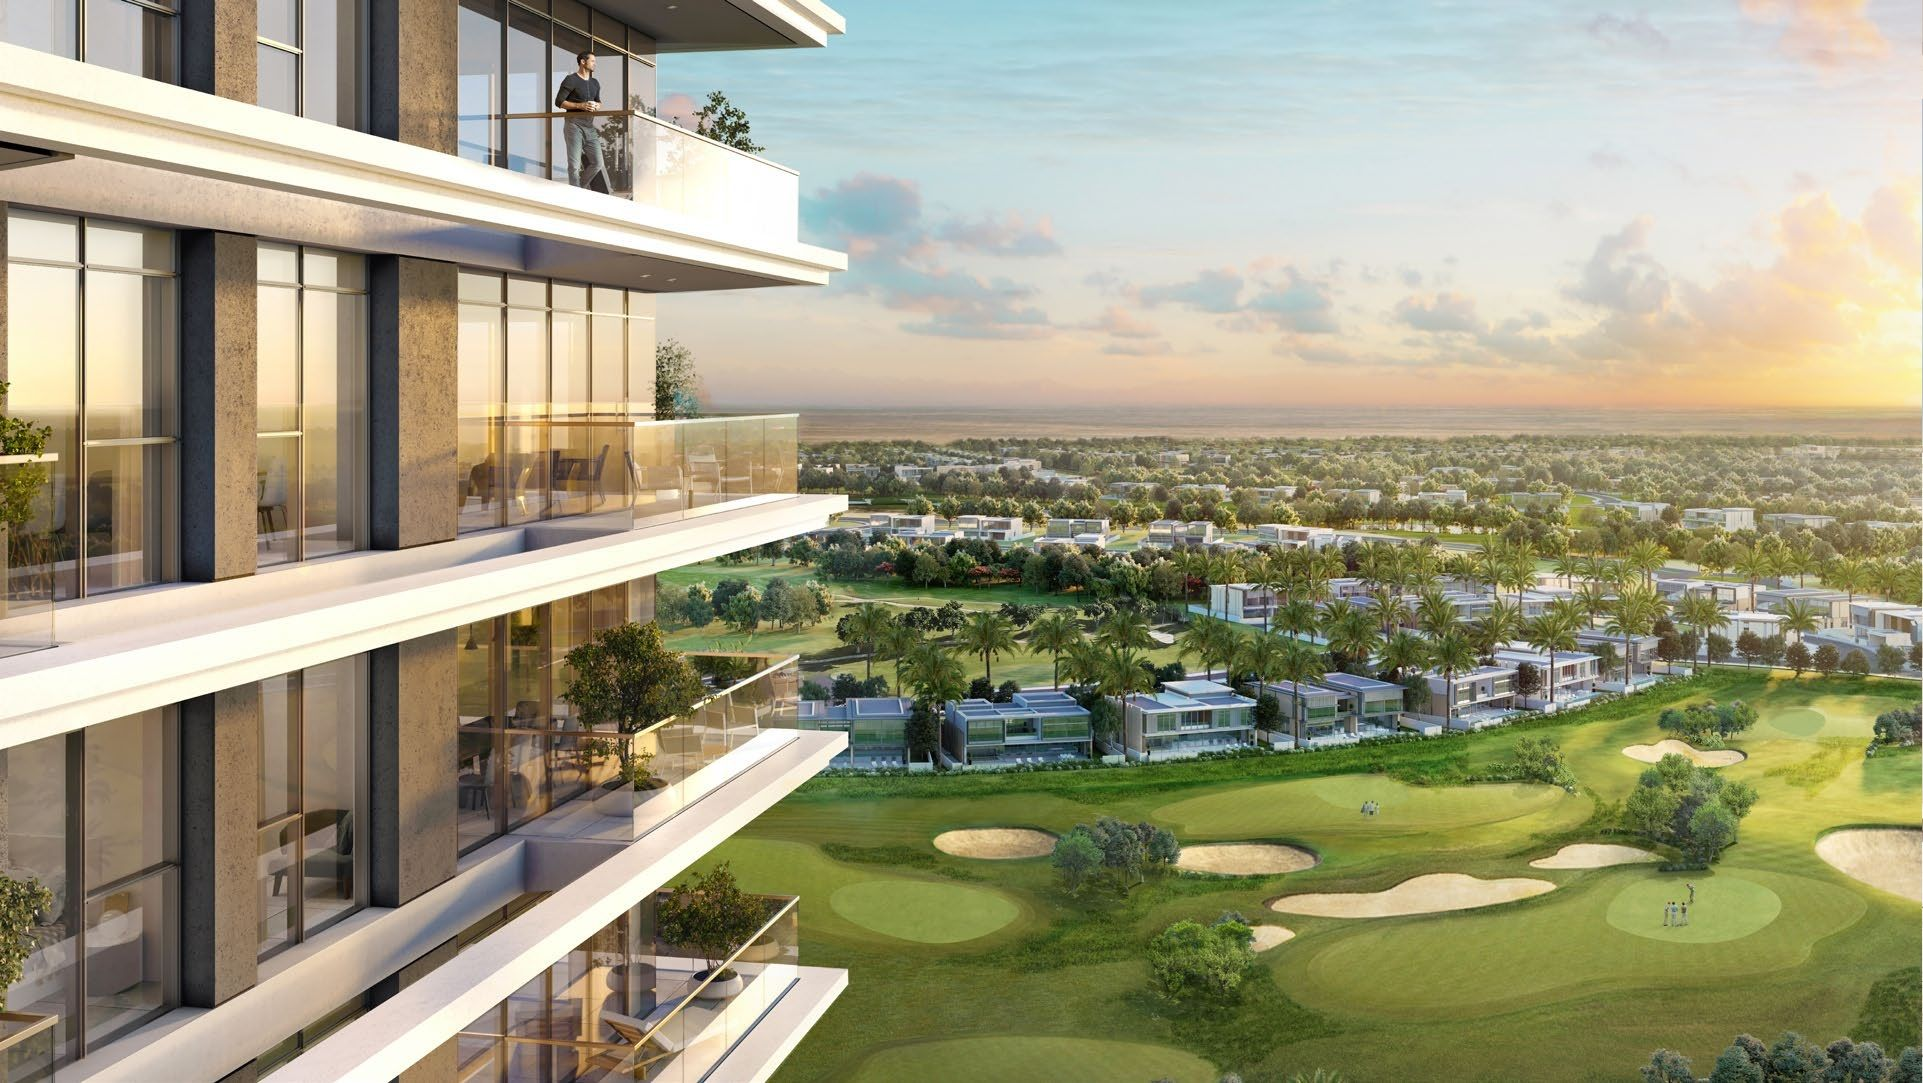 Golf Suites at Dubai Hills Estate by Emaar | Apartments for sale, Luxury  townhouse, Golf courses